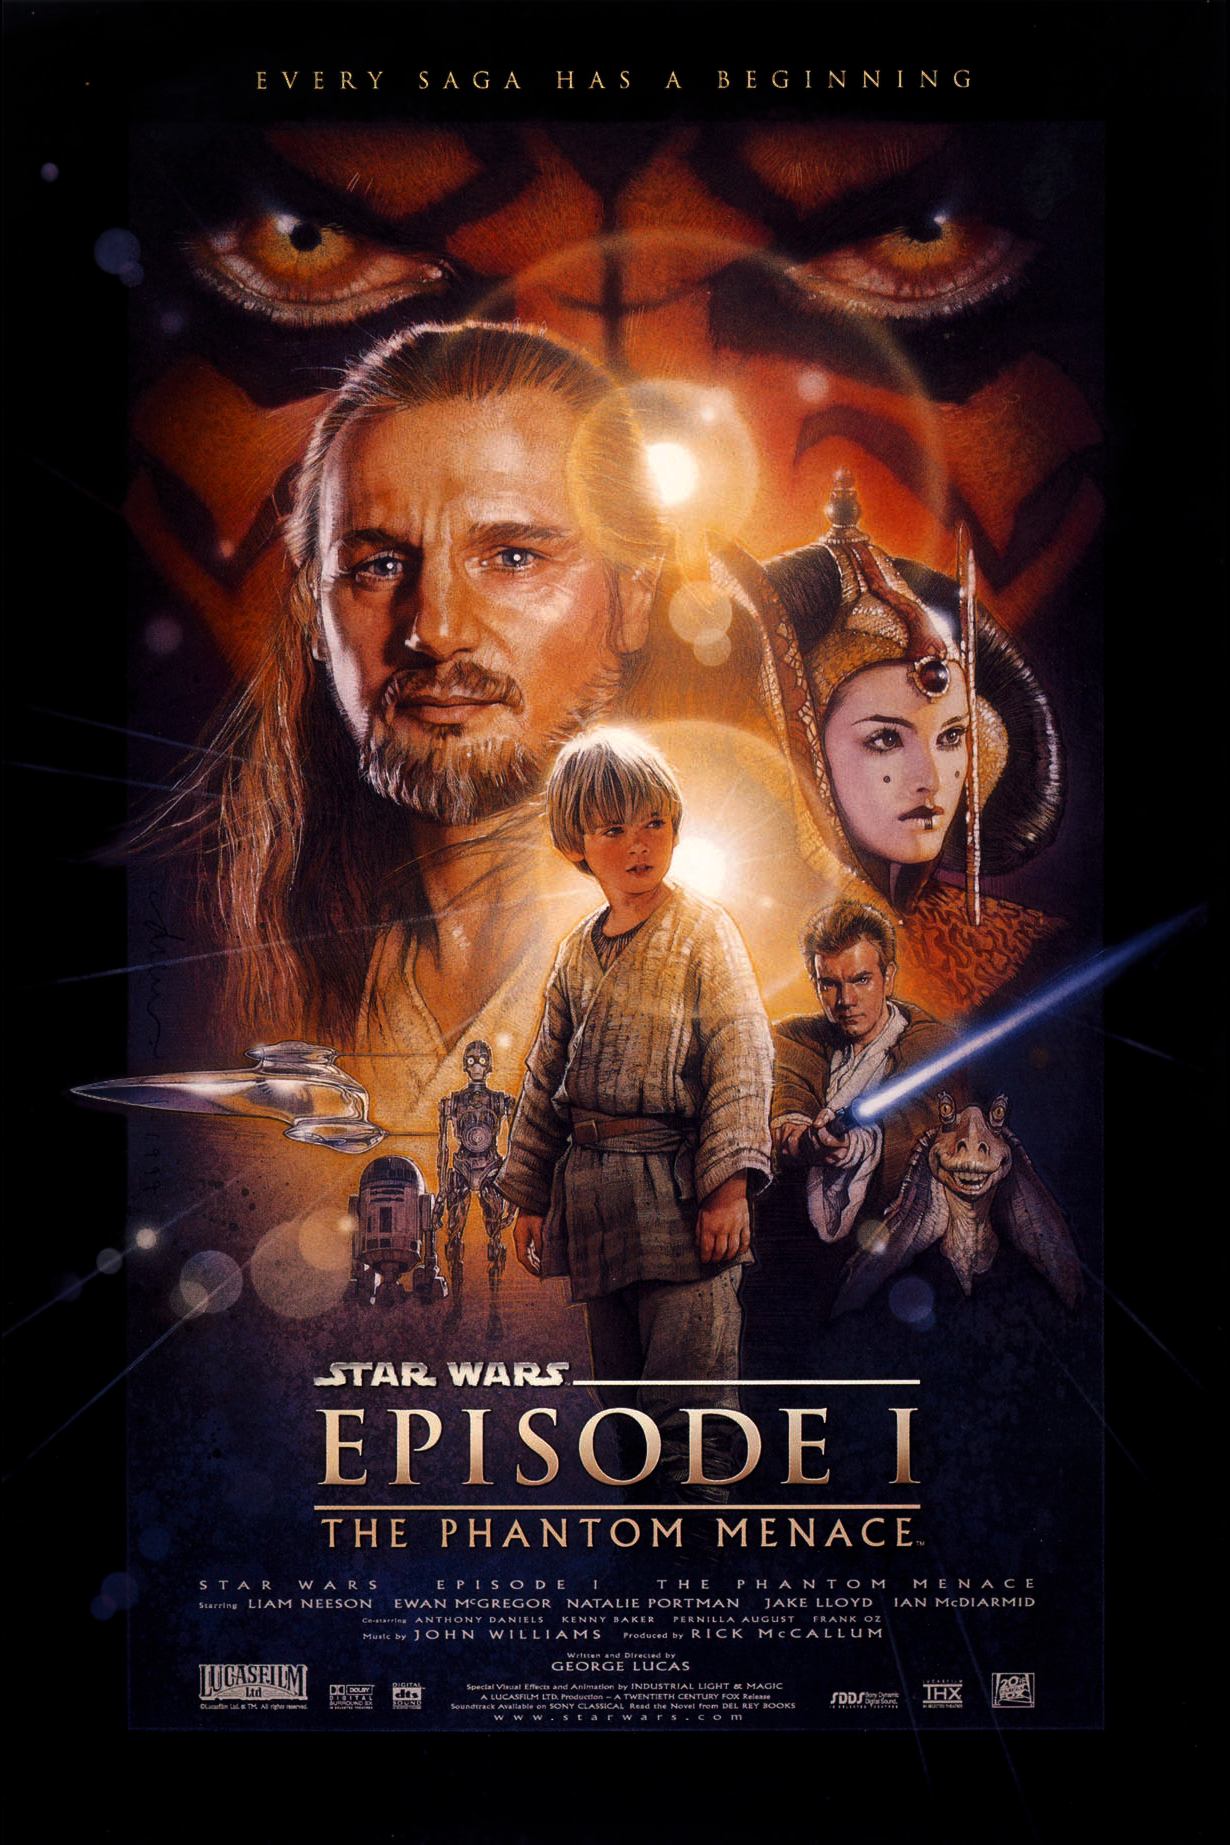 The Phantom Menace  U.S. Theatrical One Sheet - Source:  Wookieepedia